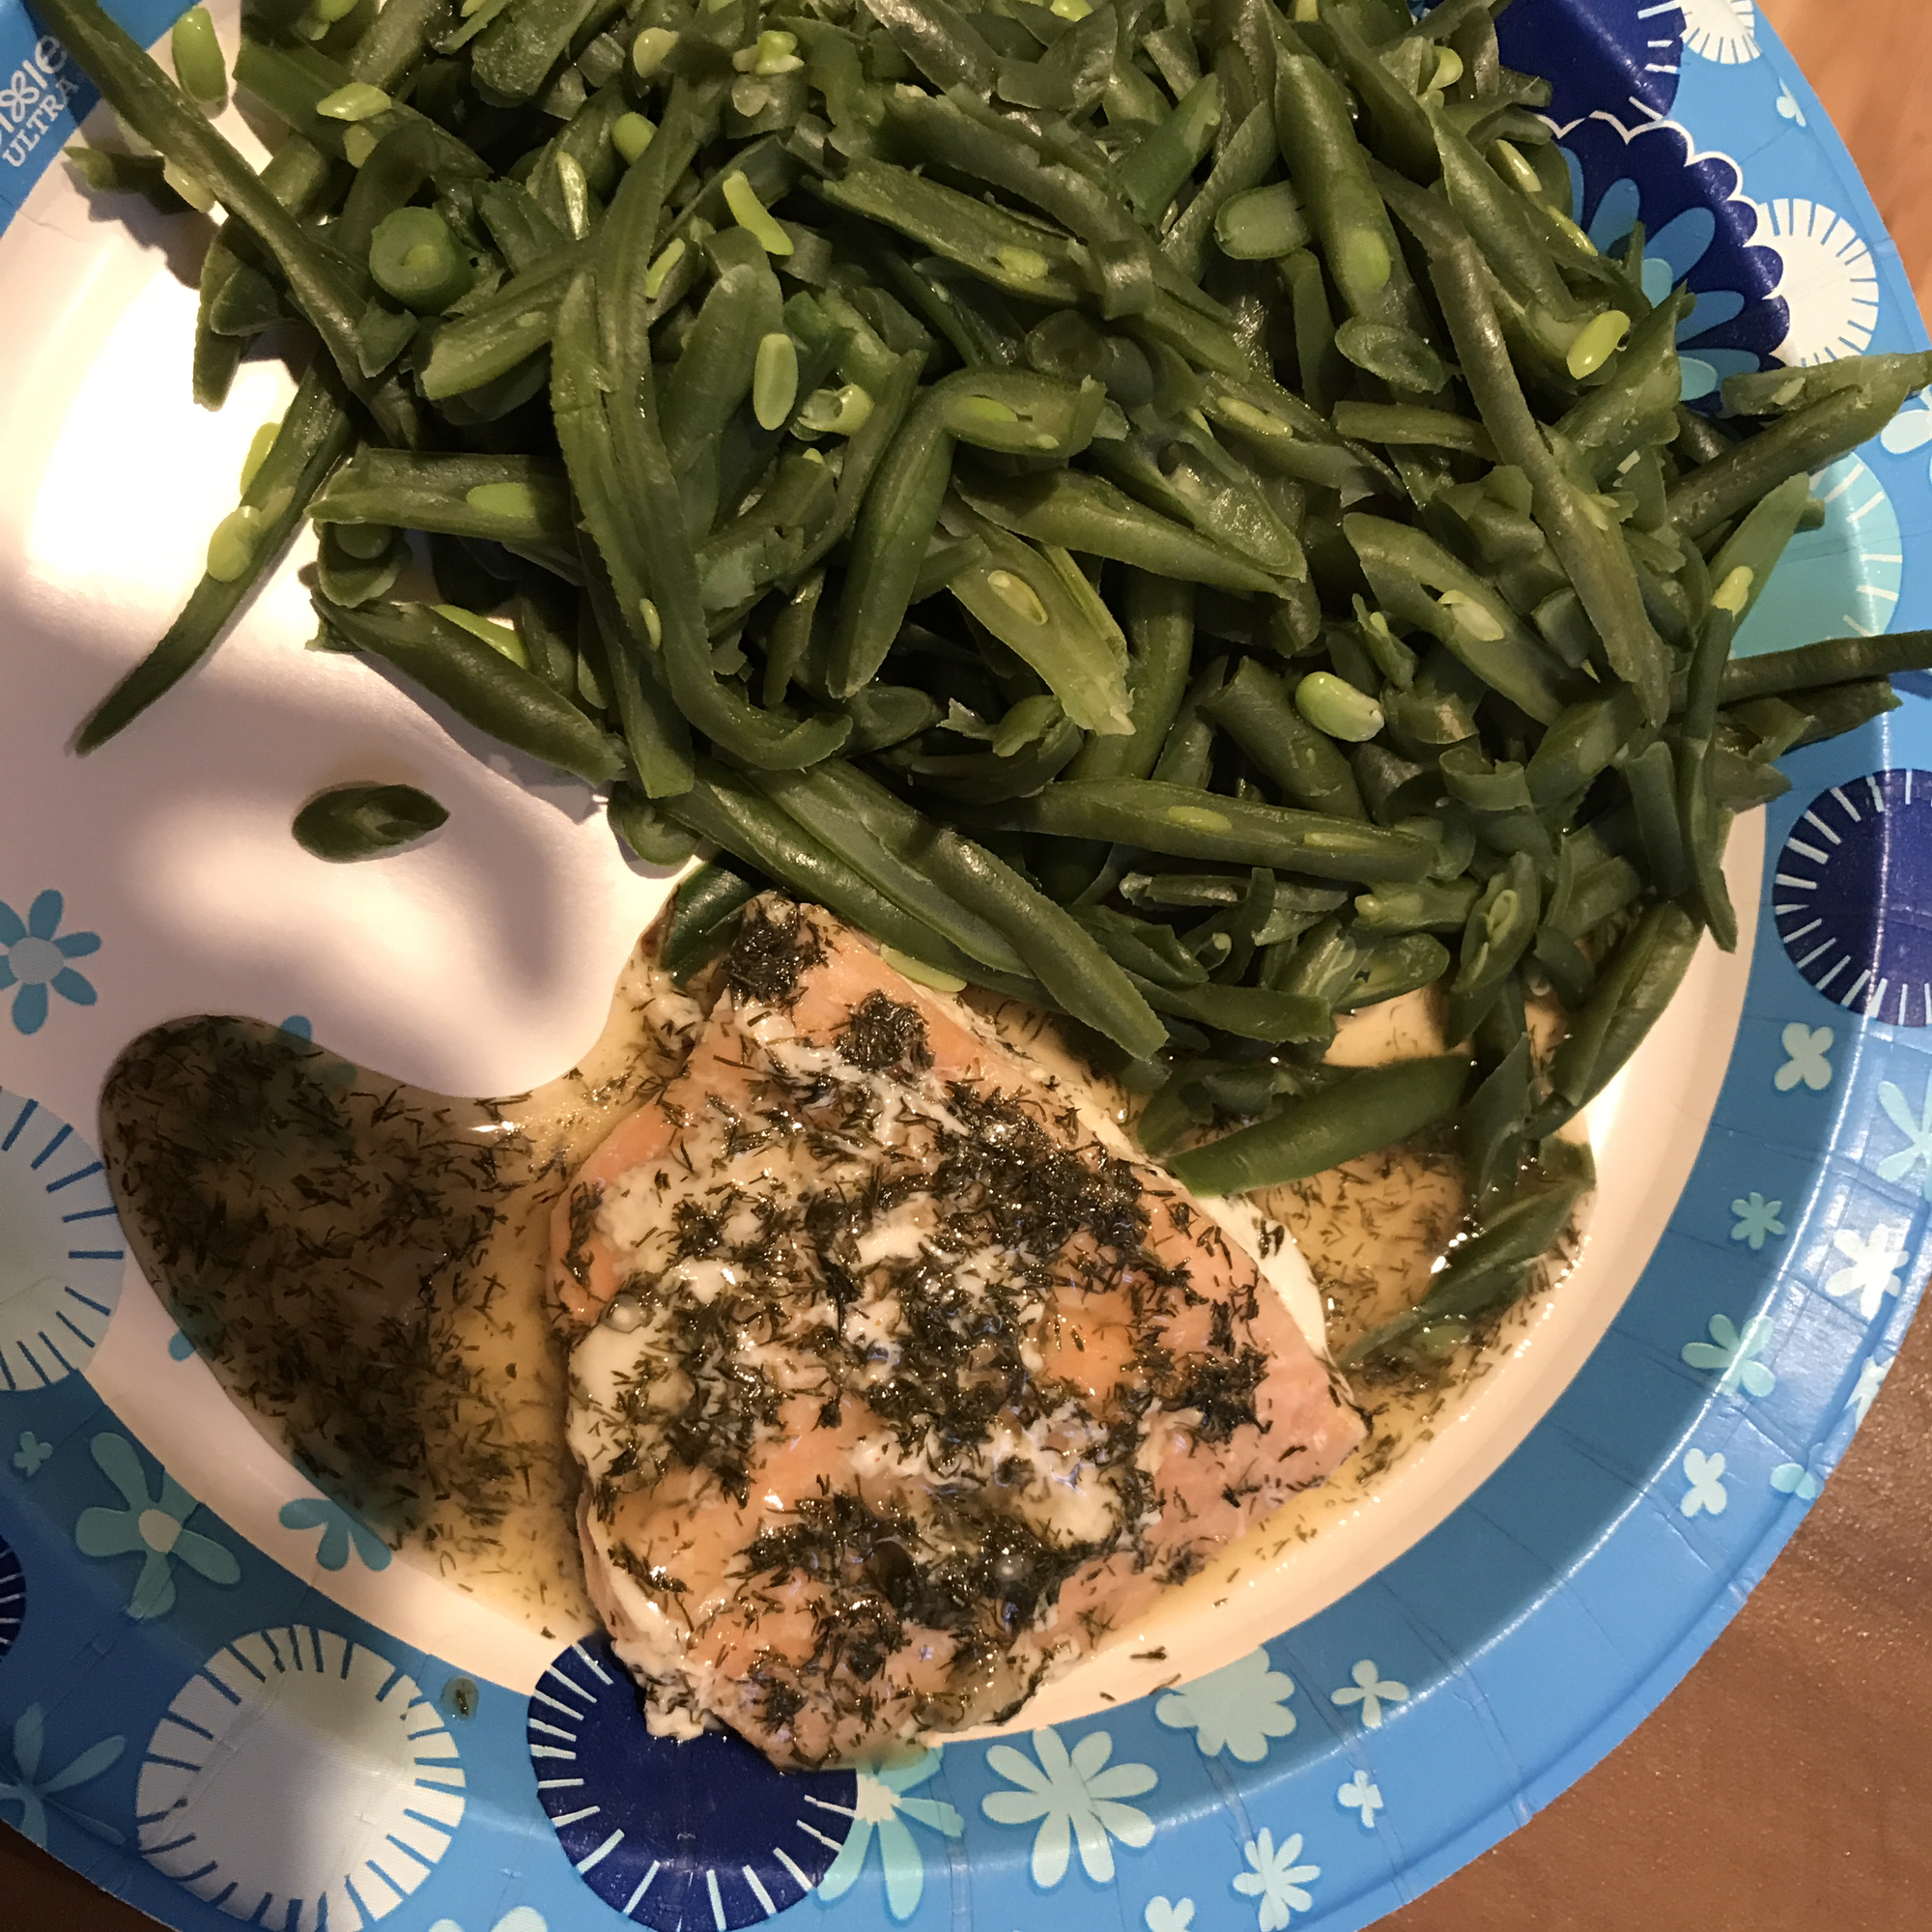 Big Ray's Lemony Grilled Salmon Fillets with Dill Sauce Raechael